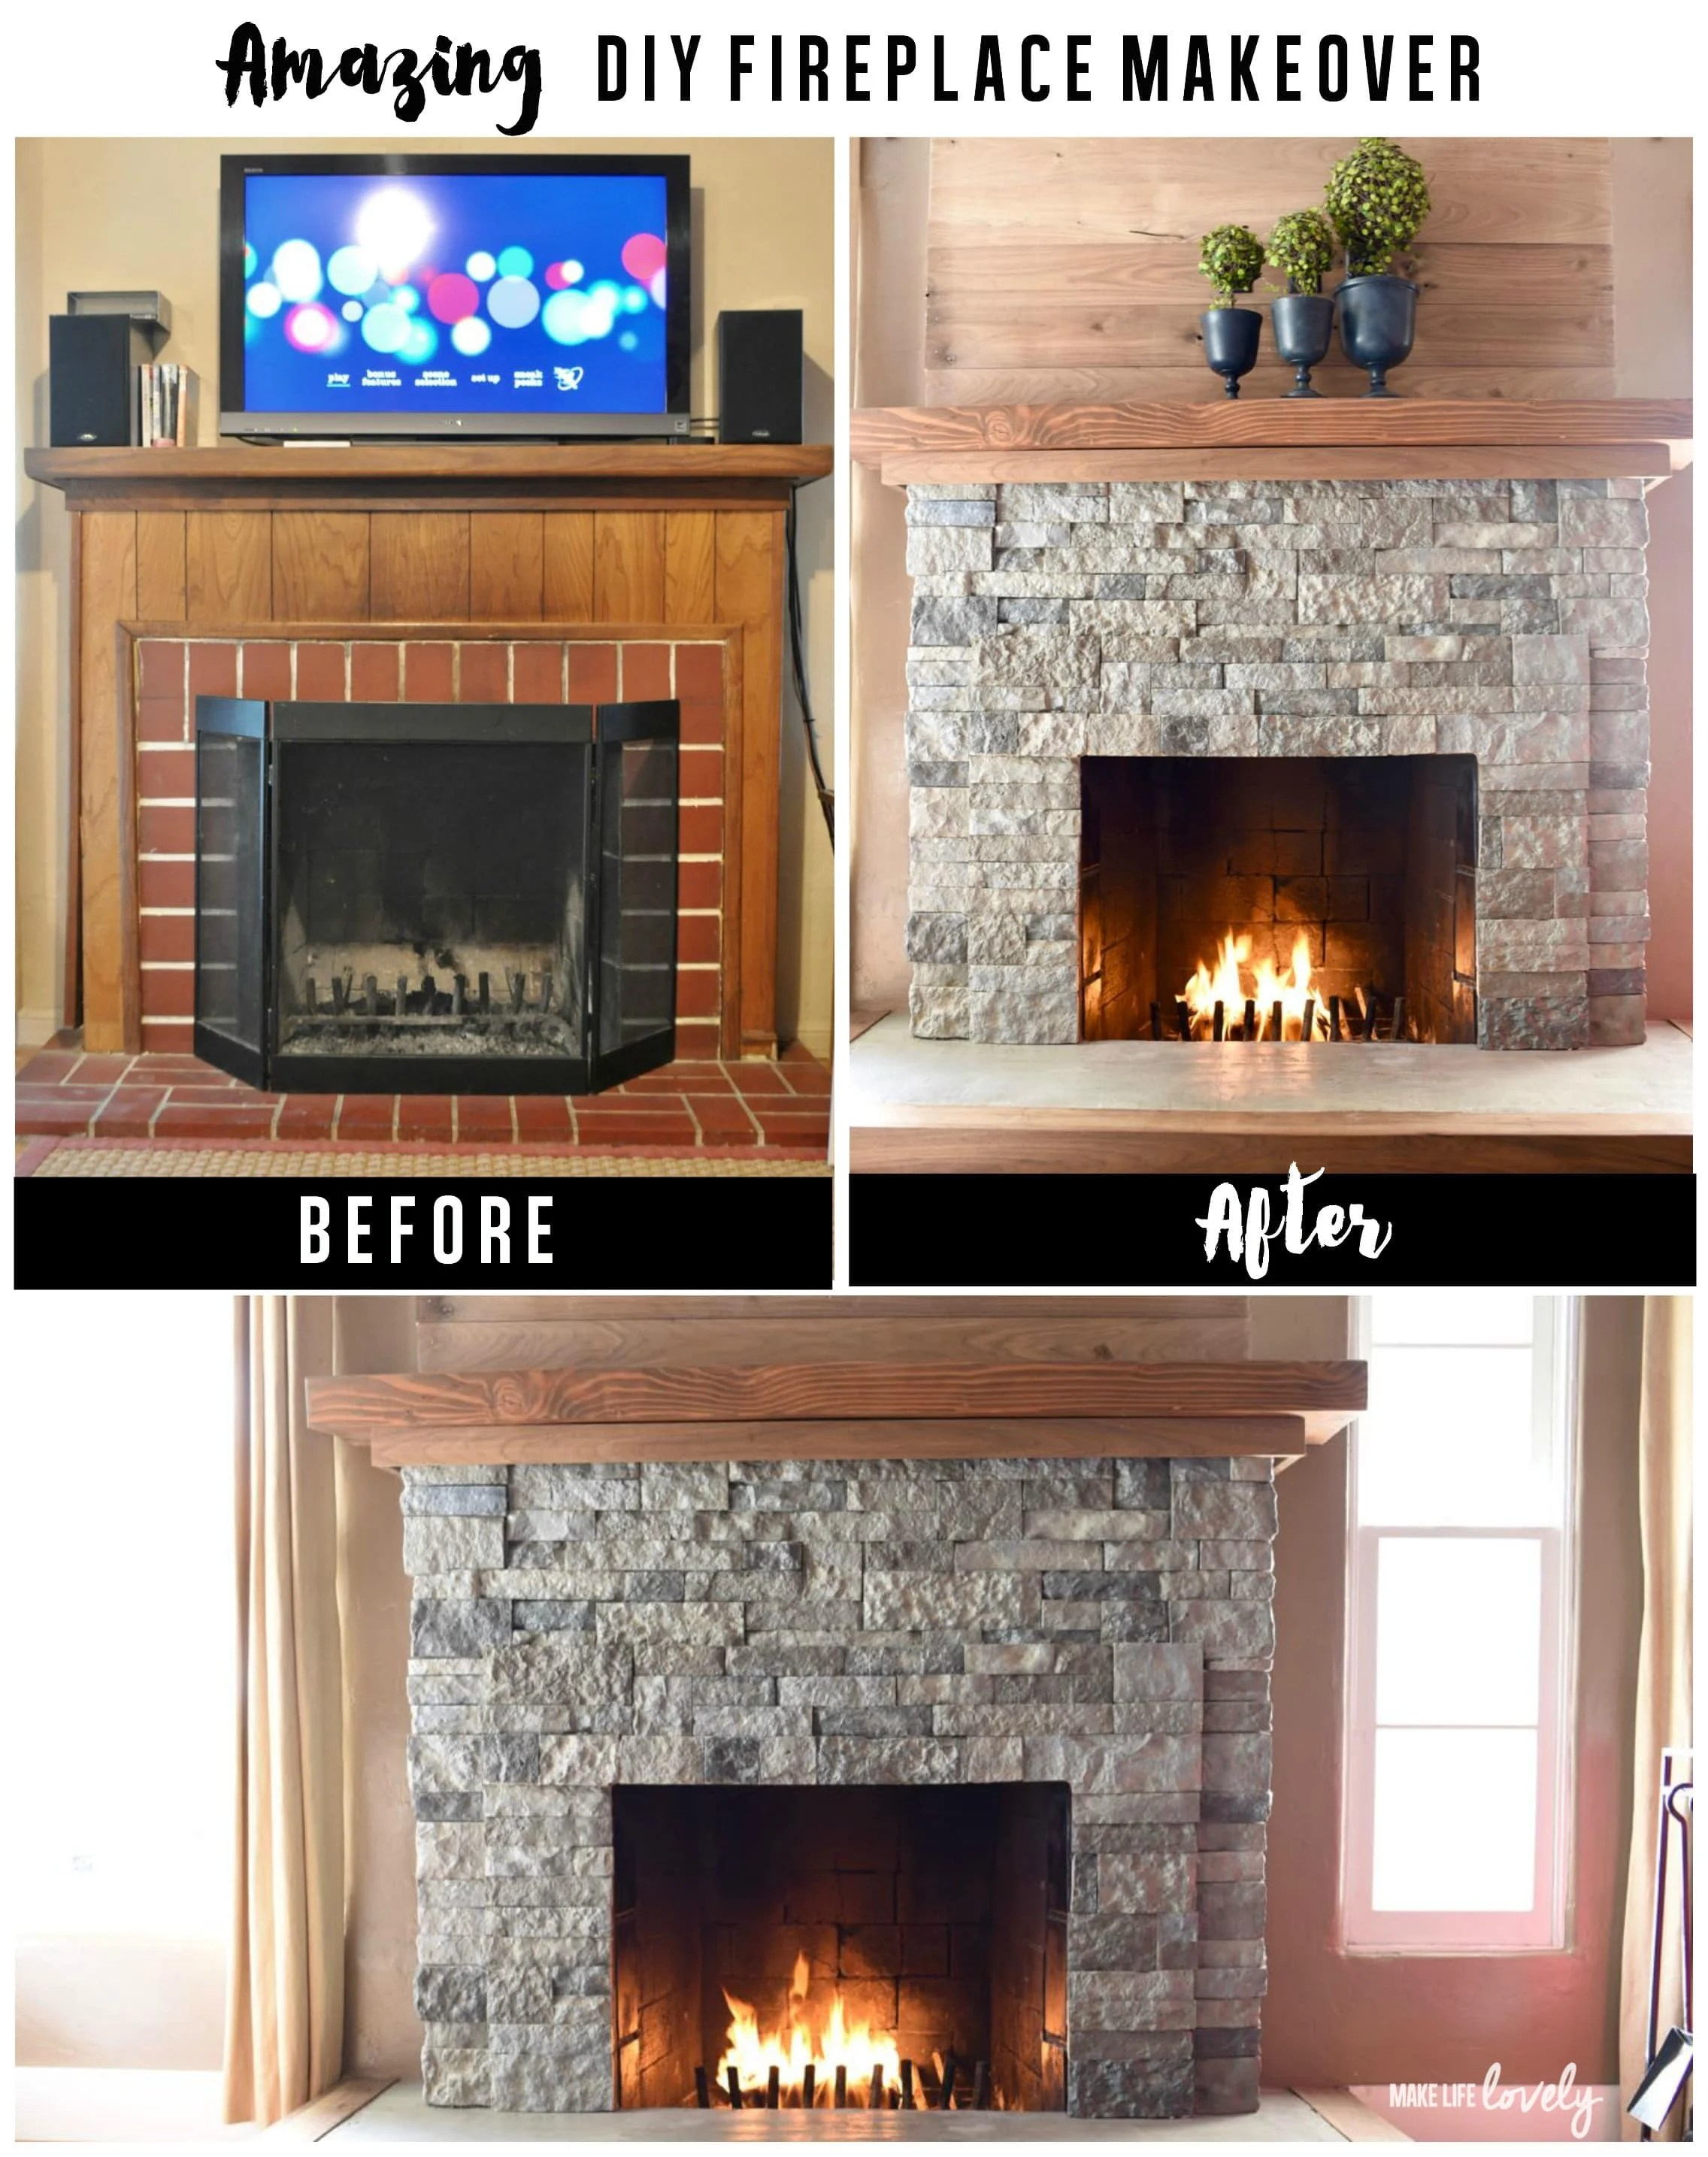 AirStone Fireplace Makeover - Make Life Lovely